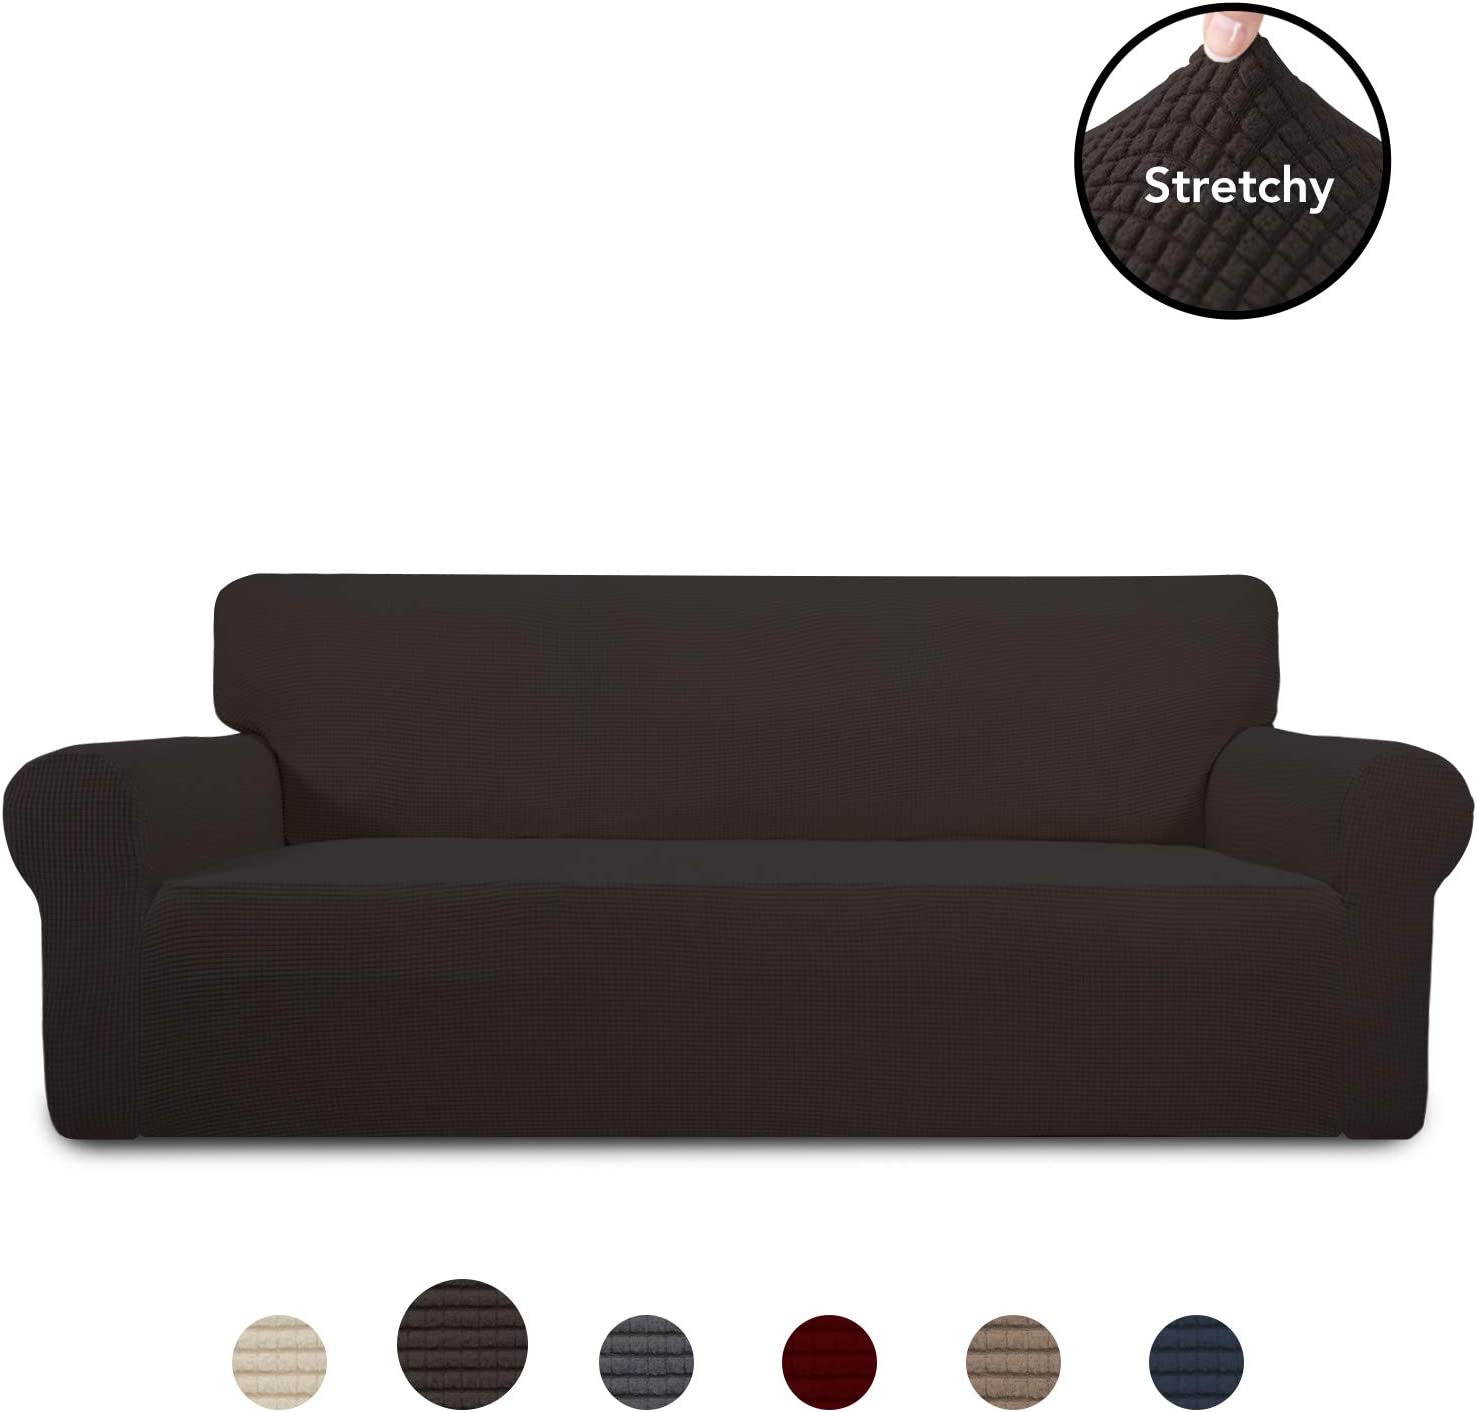 PureFit Stretch Sofa Slipcover – Spandex Jacquard Anti-Slip Soft Couch Sofa Cover, Washable Furniture Protector with Anti-Skid Foam and Elastic Bottom for Kids (Sofa, Chocolate)